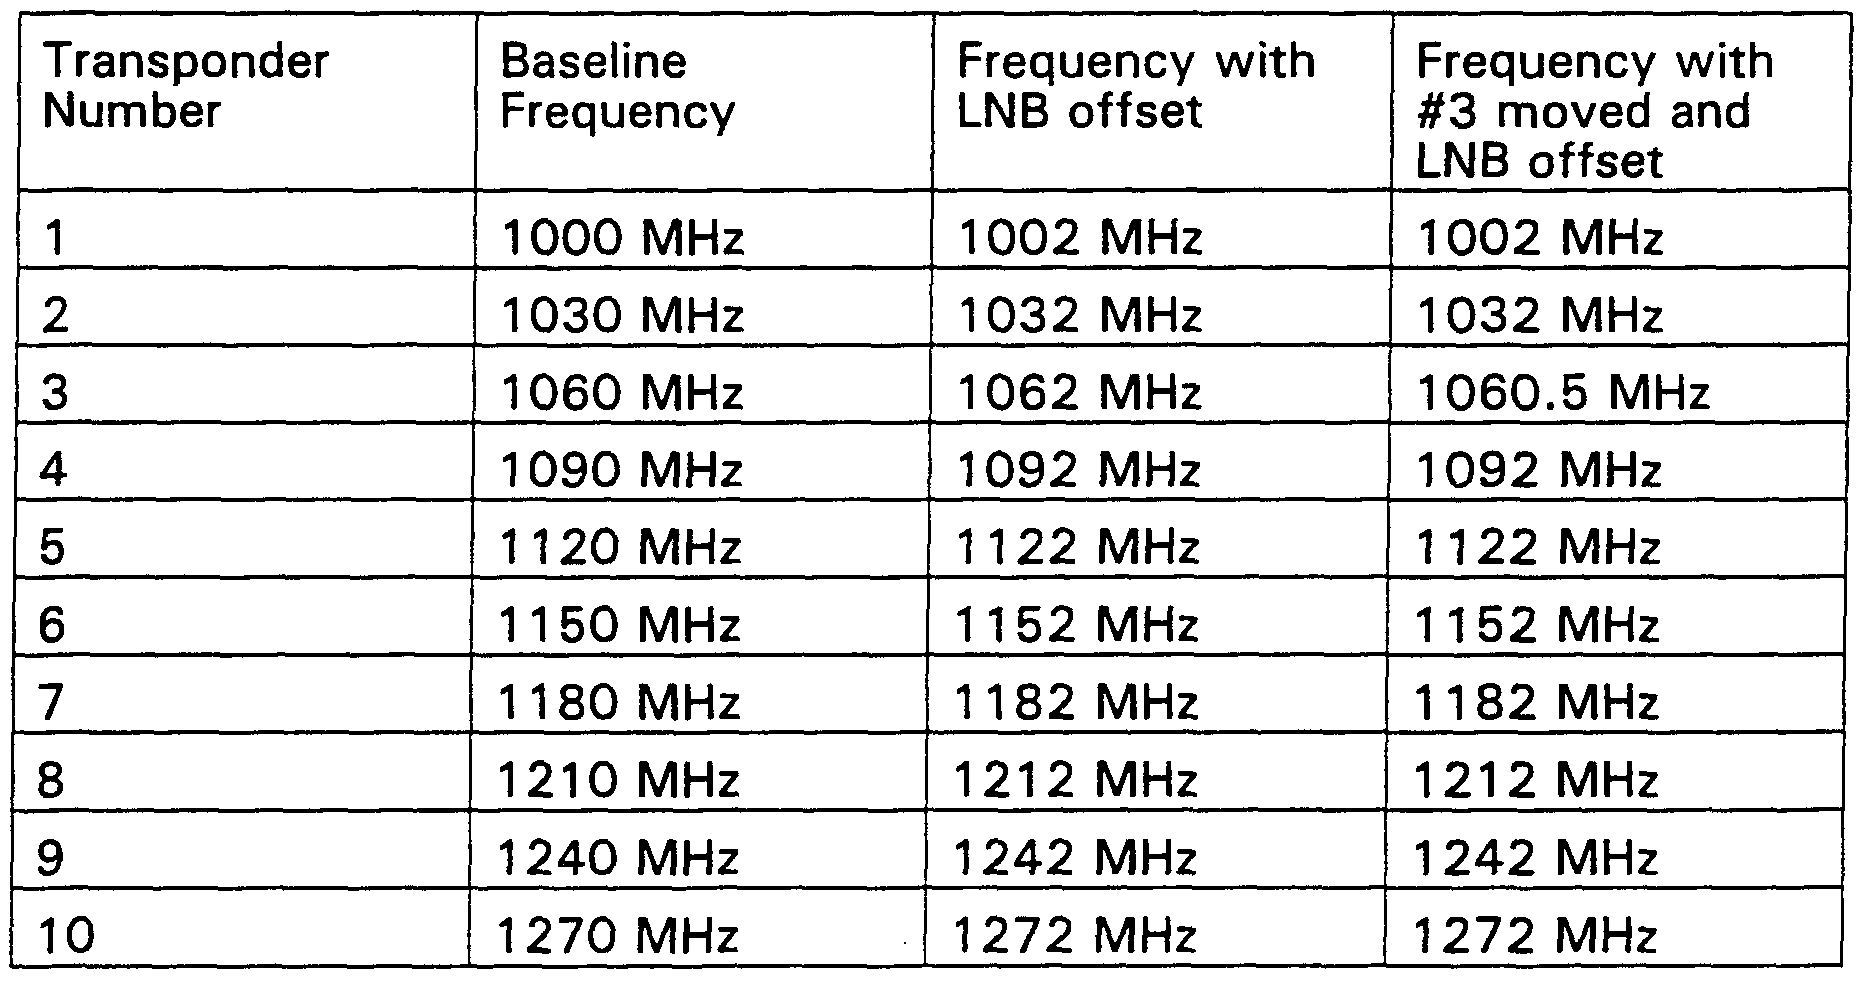 understanding lnb frequency and transponder frequencies Sky channel numbers and frequency/transponder lists generated from bskyb sdt/bat/nit si data.